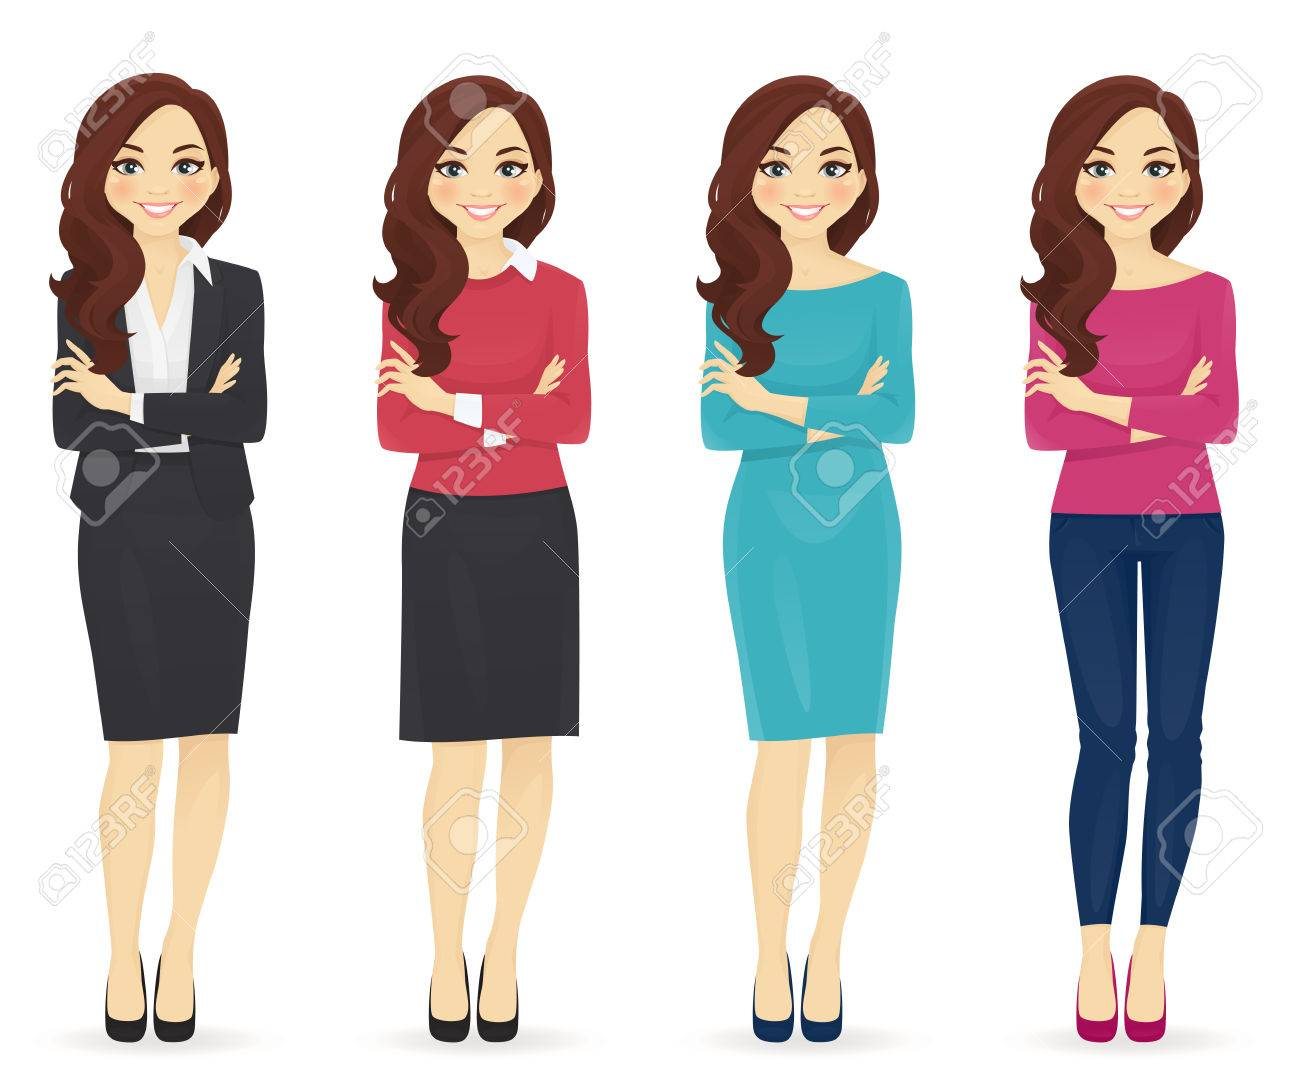 Smiling cute woman in different style clothes with arms crossed standing isolated on white background - 60632591